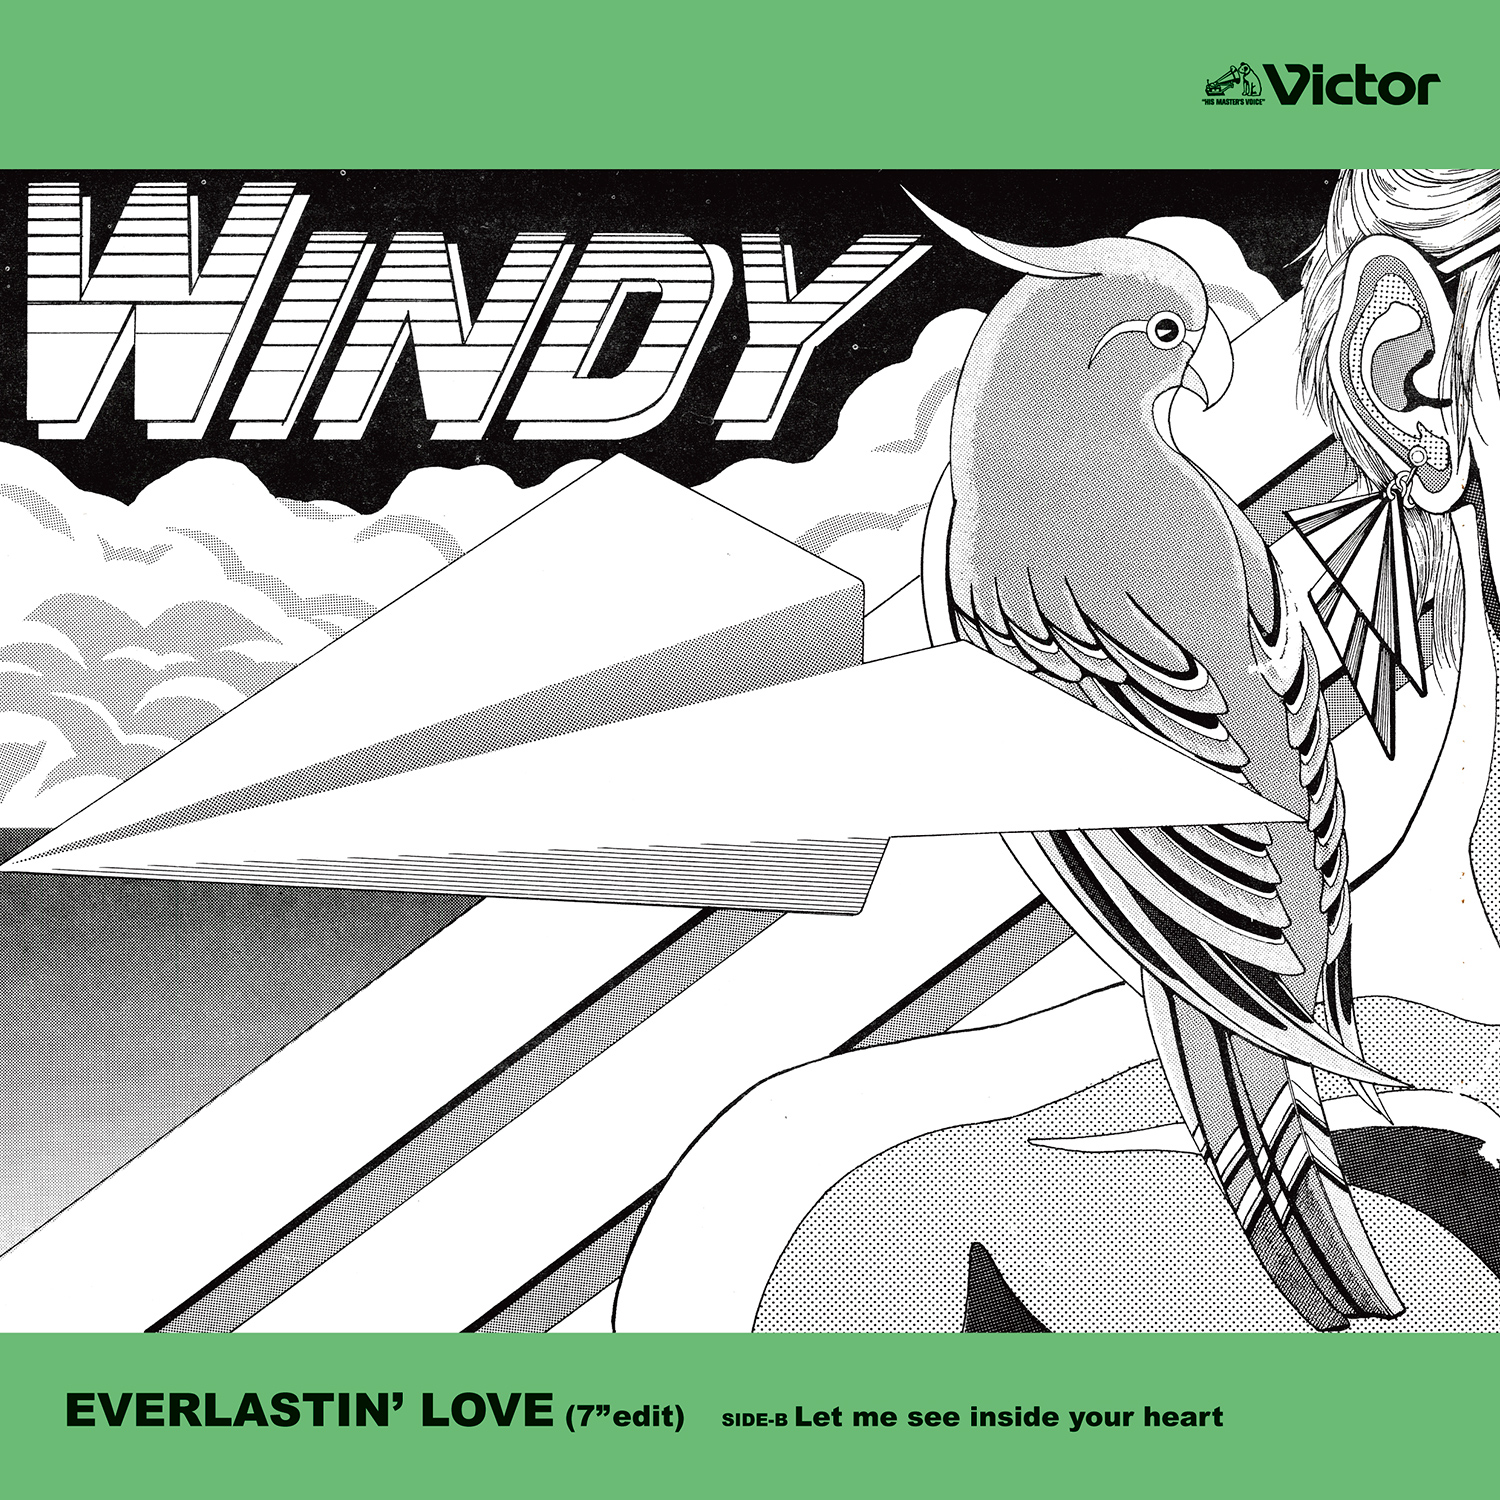 054 WINDY Everlastin' Love / Let me see inside your heart